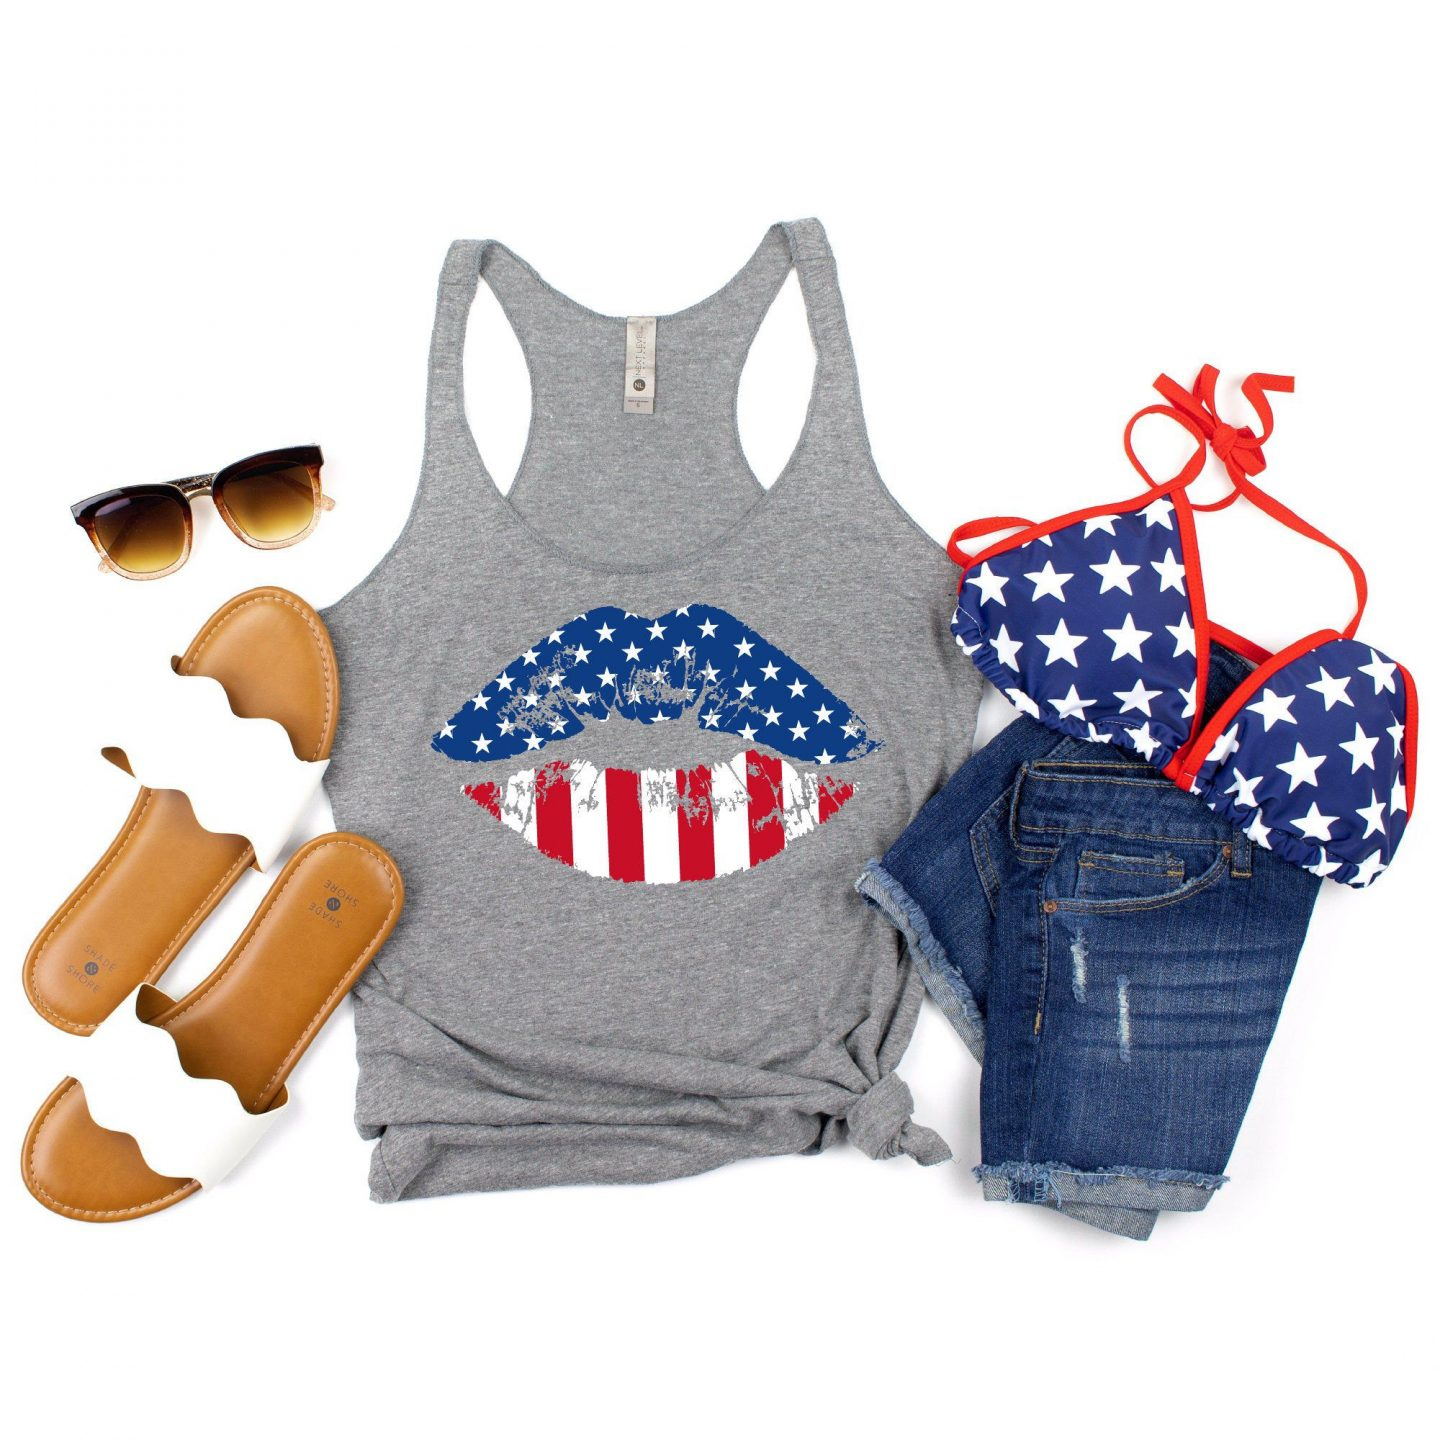 Casual 4th of July outfit